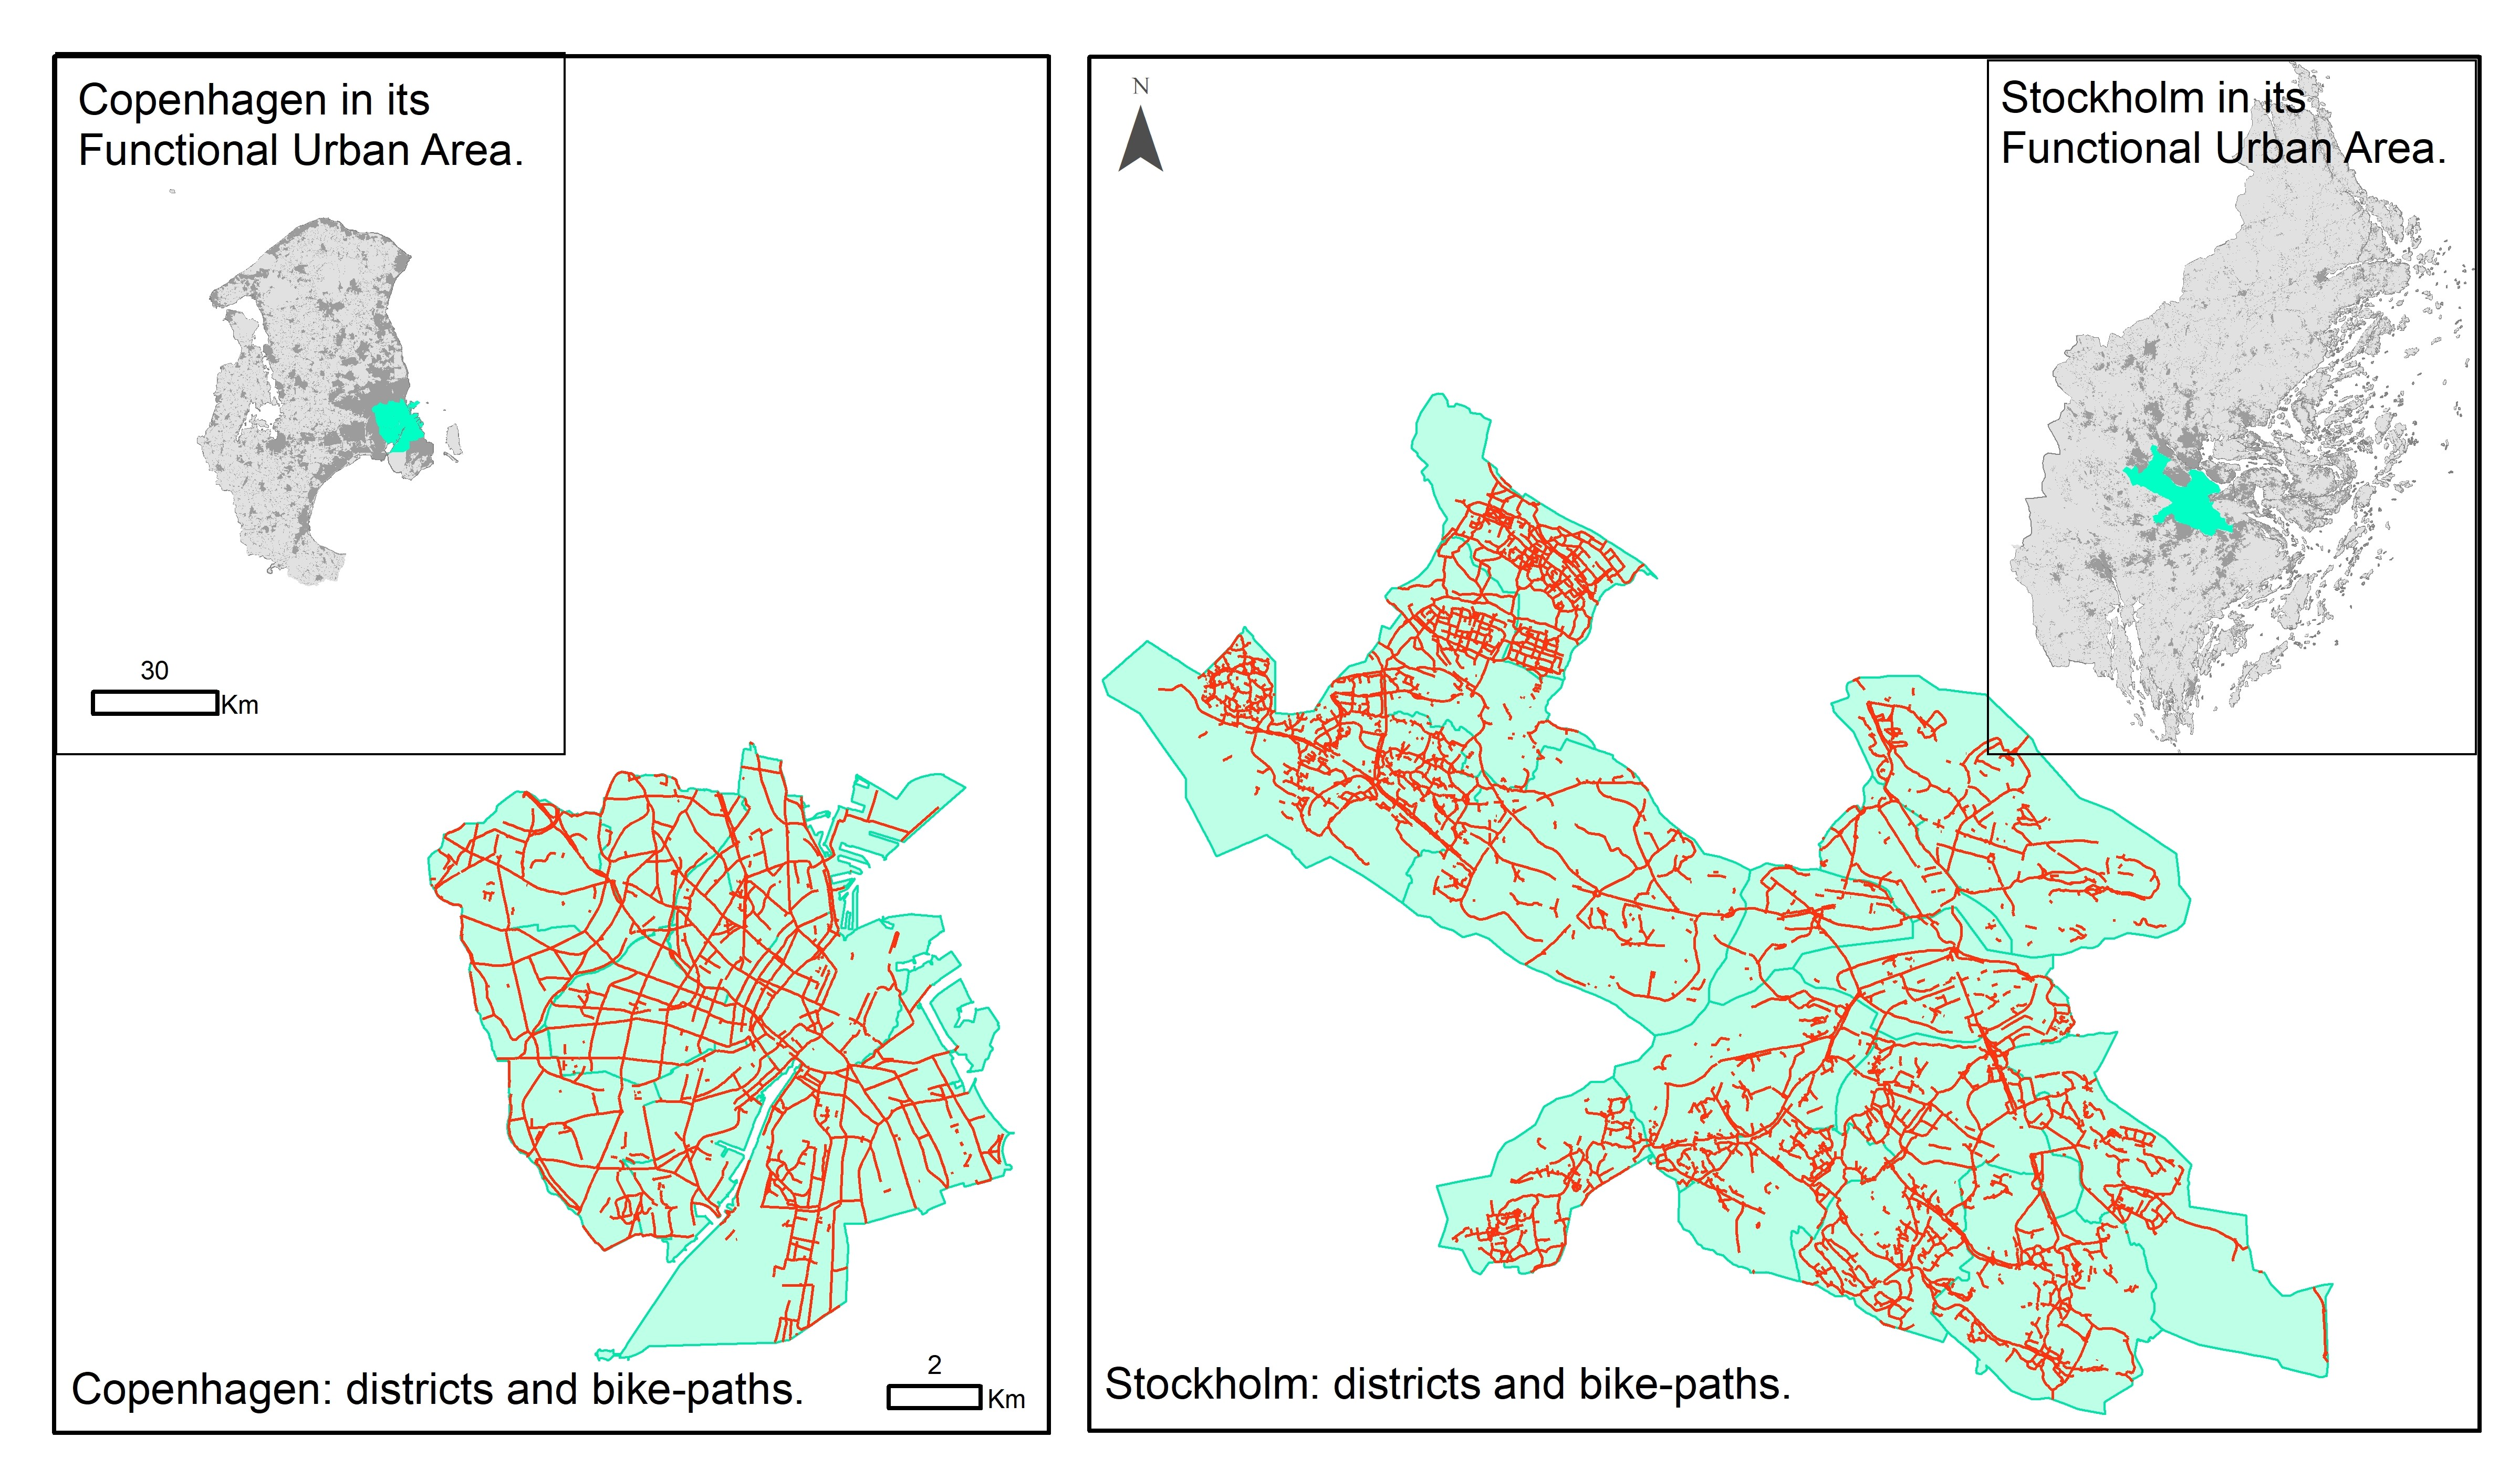 Copenhagen, Stockholm and their cycling infrastructures (based on Open Street Map data).